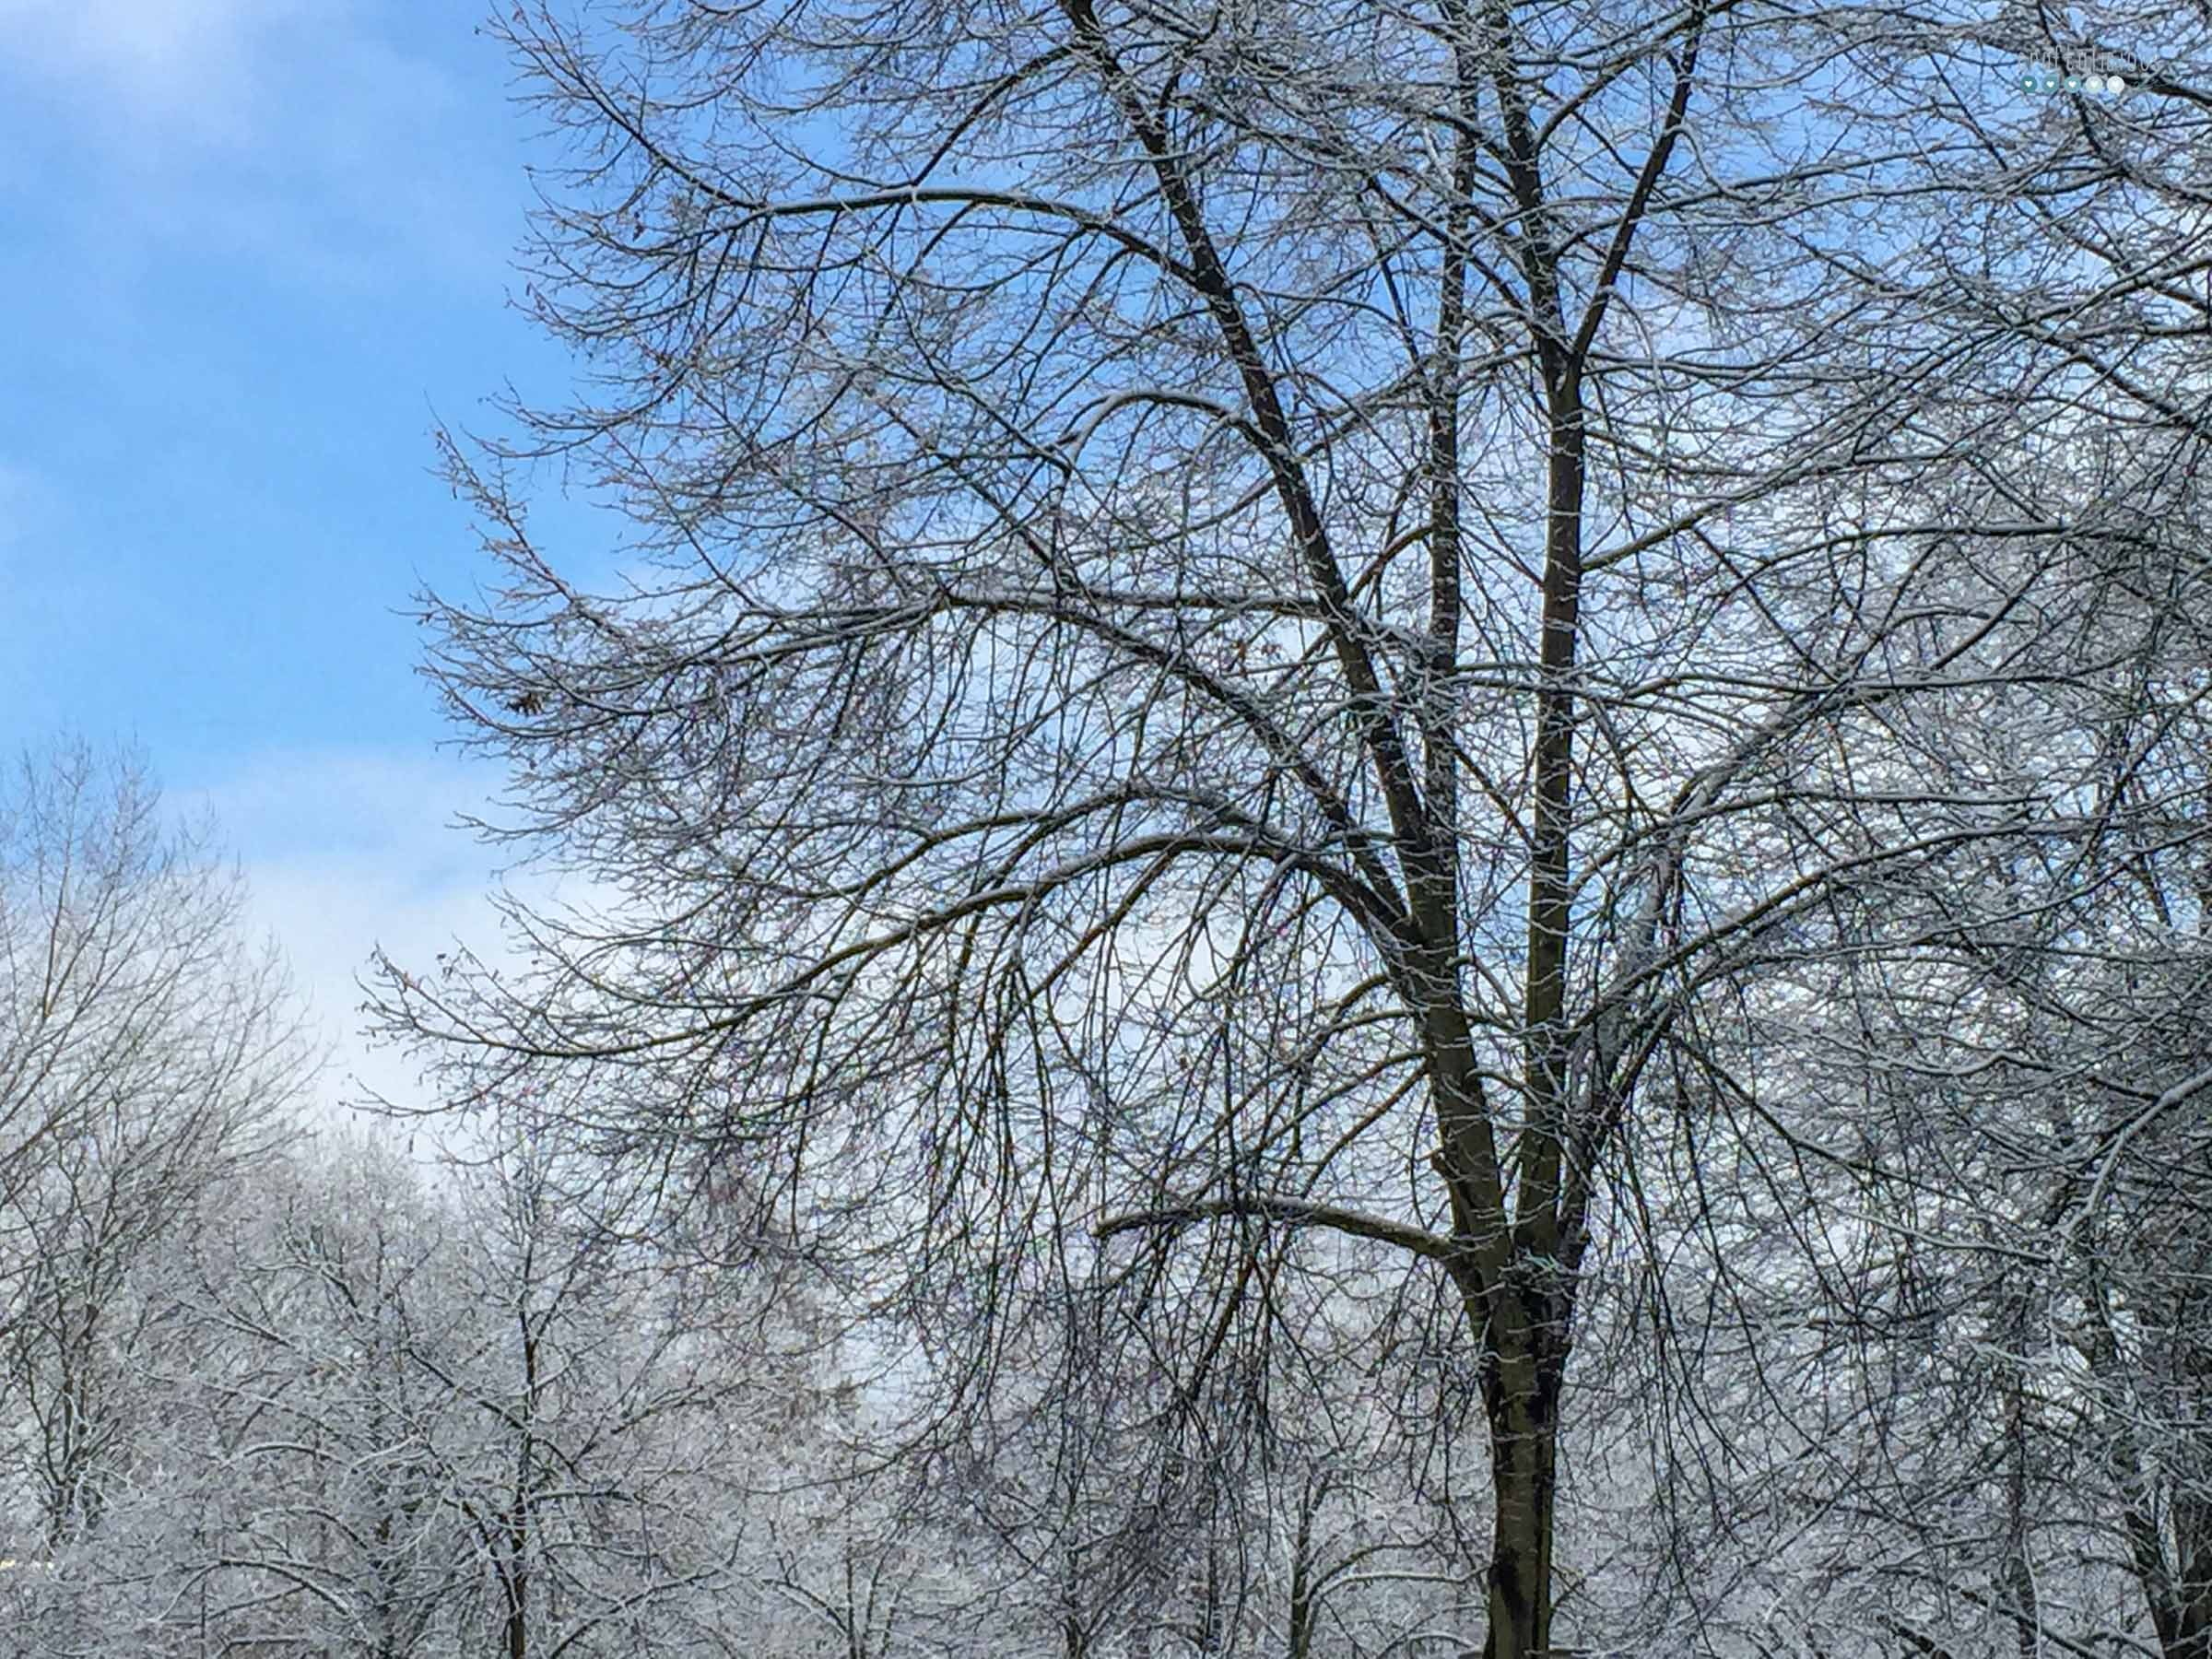 winter bucket list 2020 with snow dusted trees with blue sky craftaliciousme seeking creative life